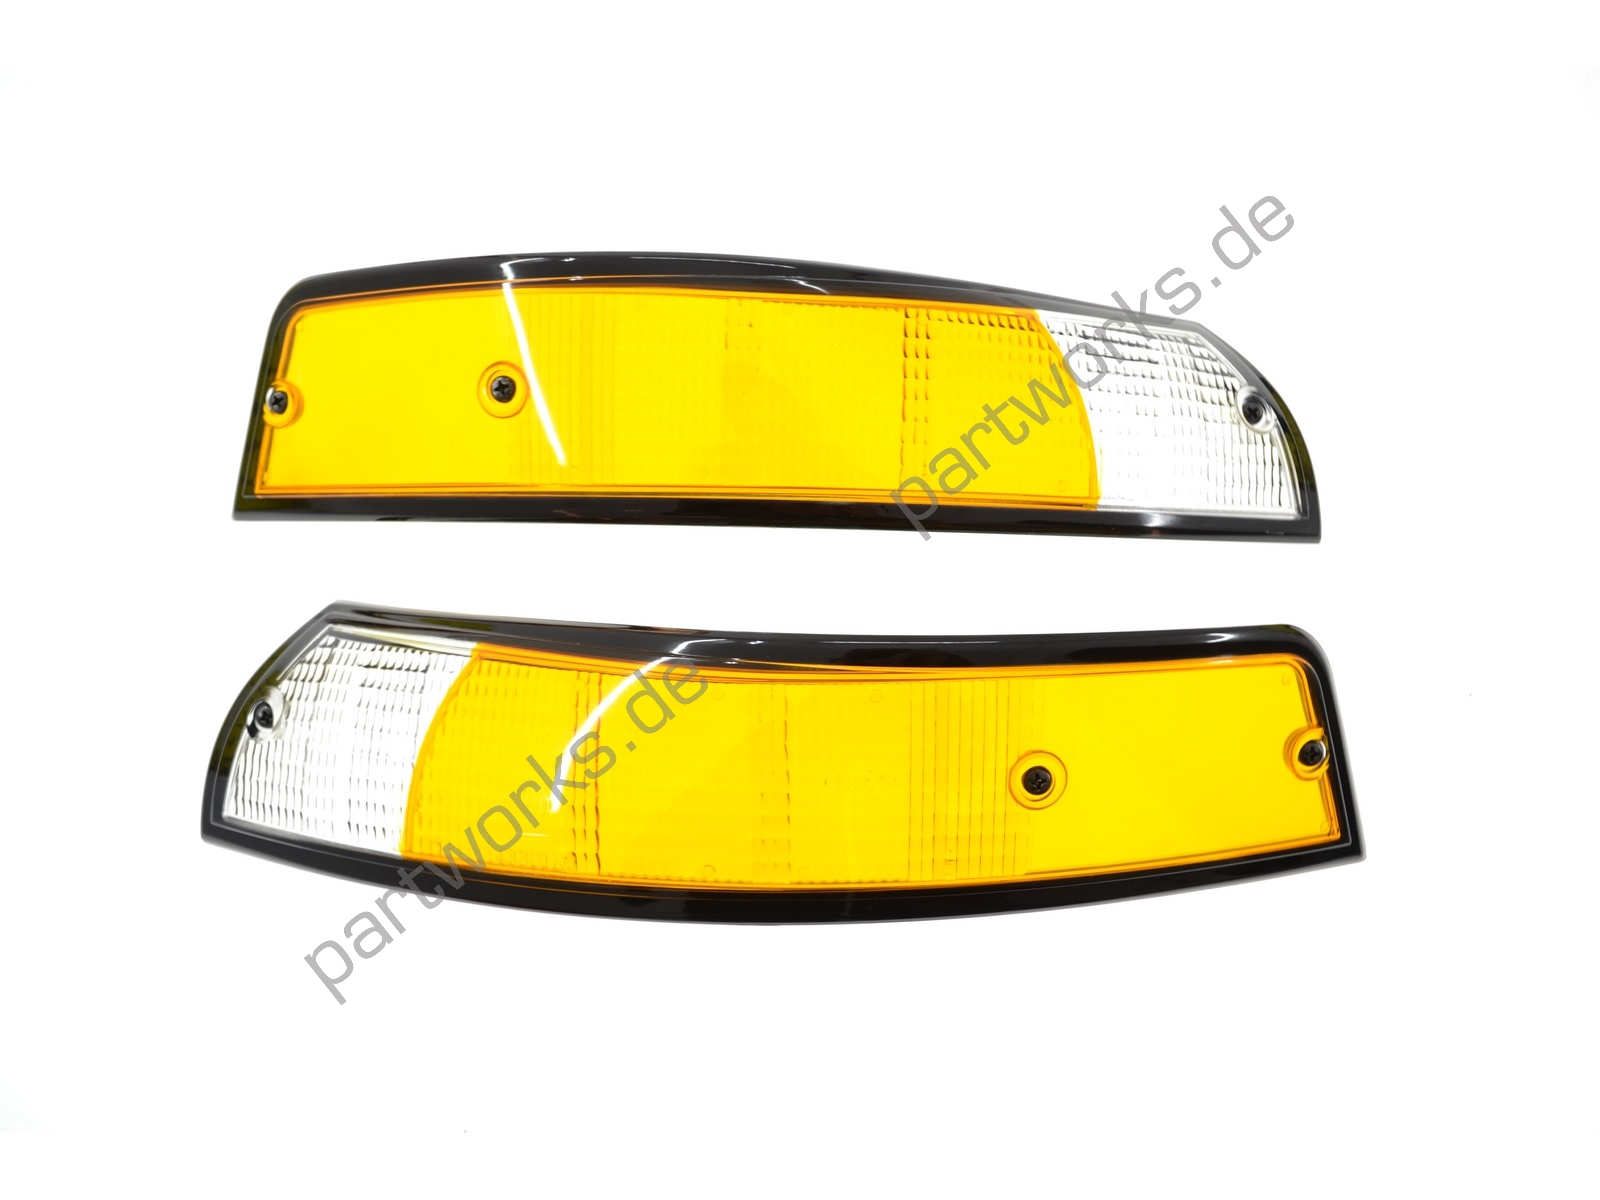 2 front turn signals for Porsche 911 F '69-'73 EU SW